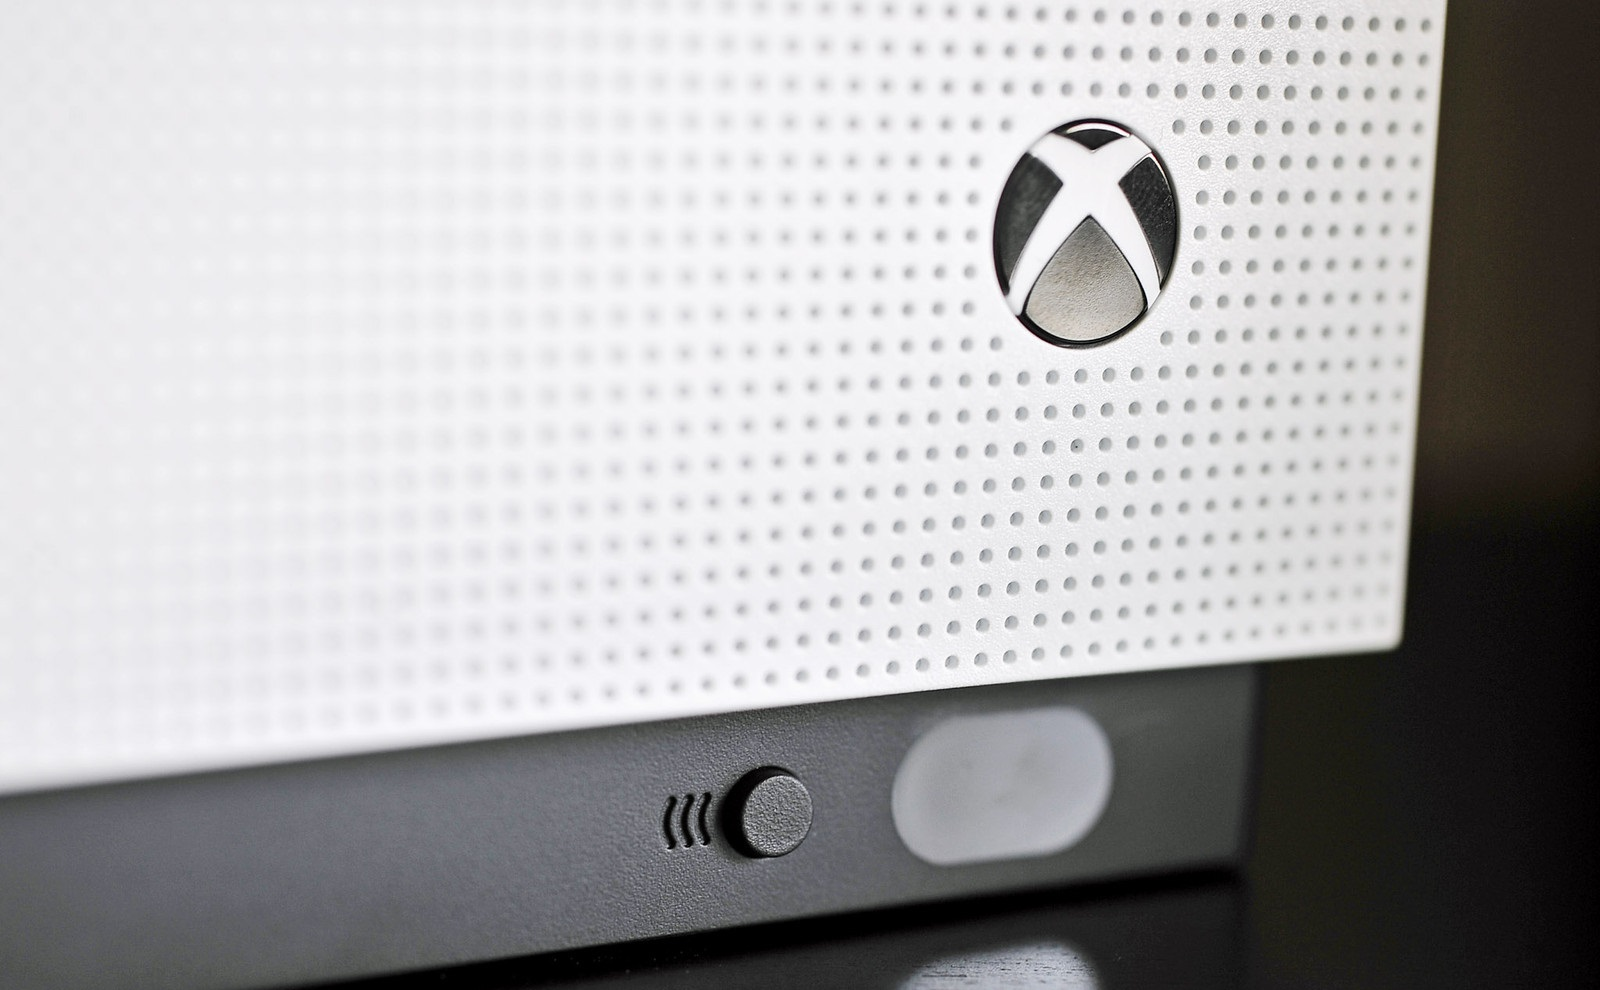 Microsoft Believes This Could Be The Last Console